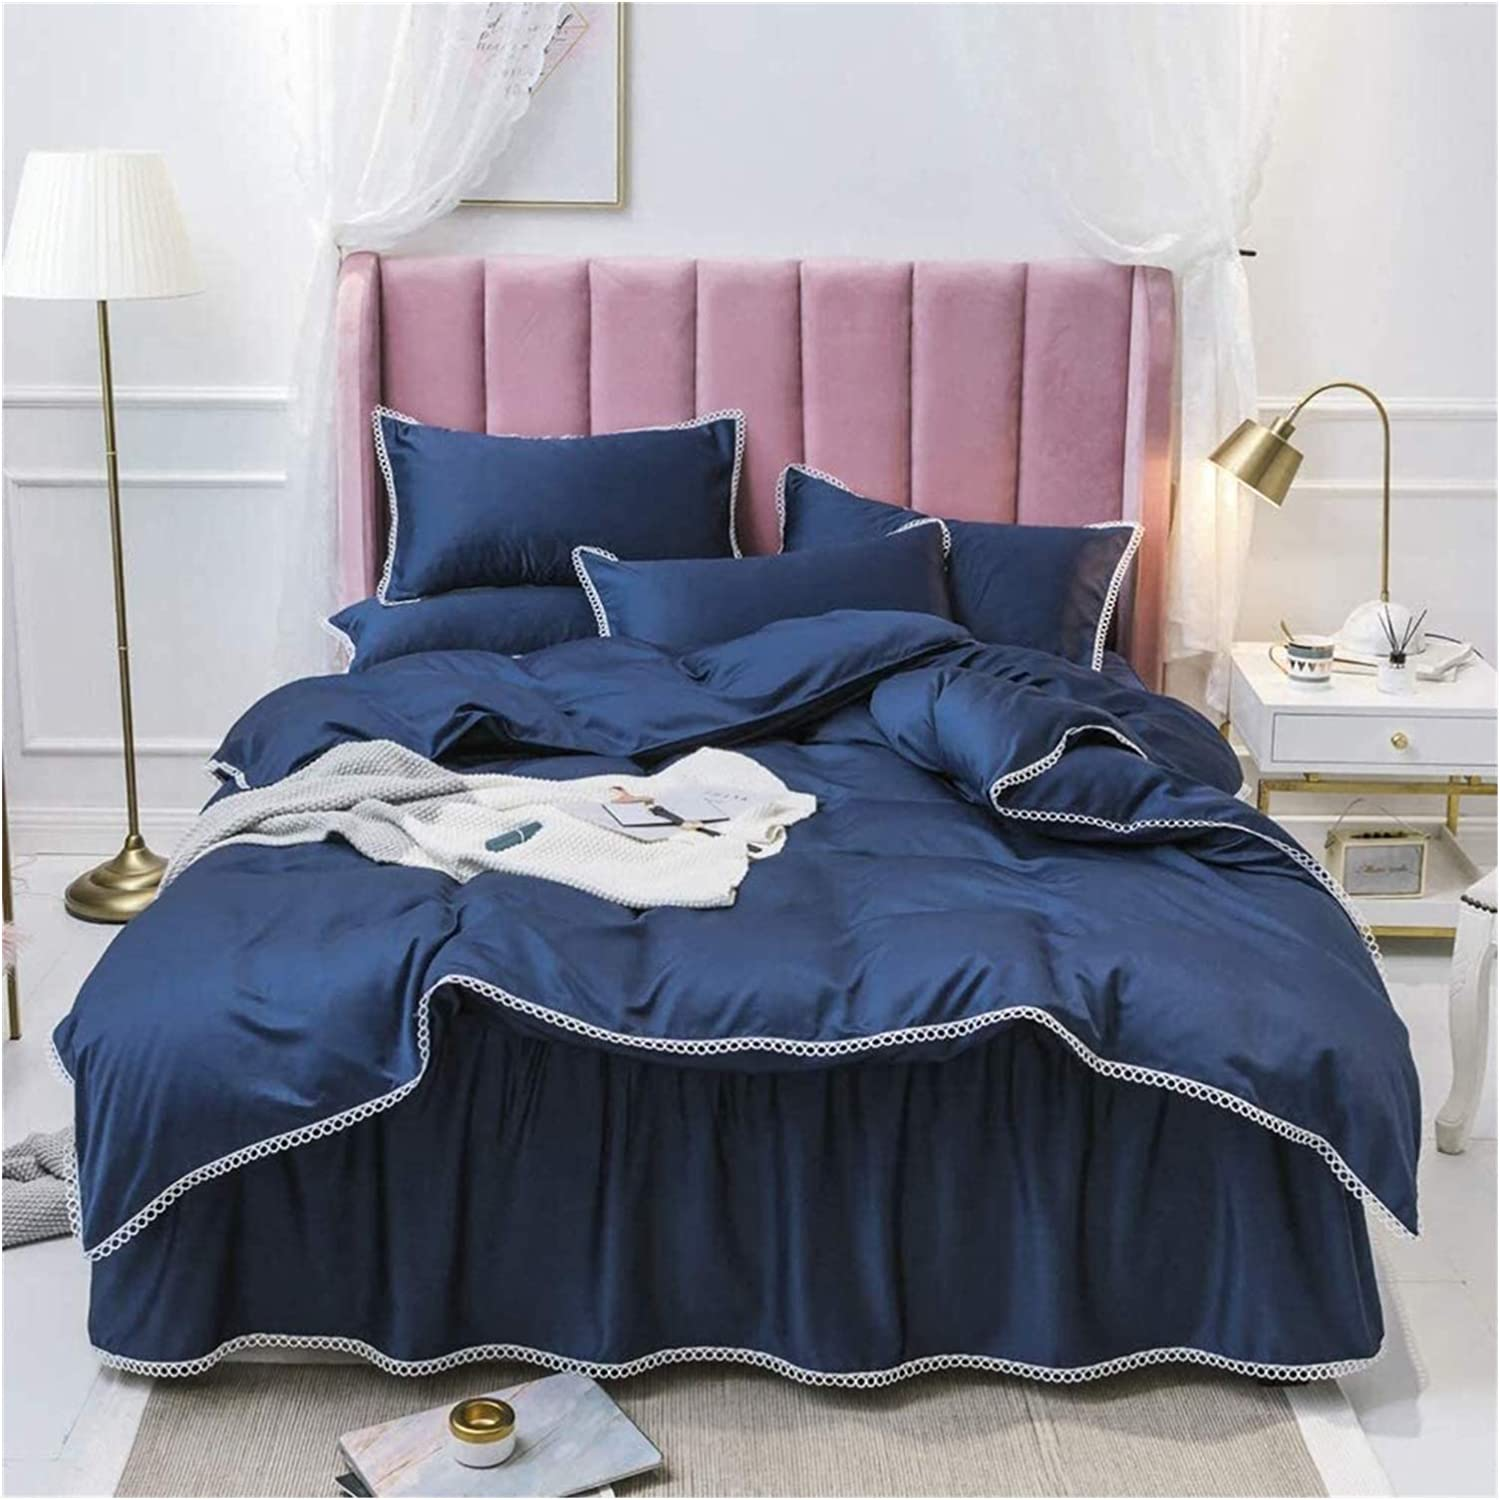 Luxurious Max Factory outlet 82% OFF Soft Four-Piece Bed Sheet Silk Washed Set Pillowcase